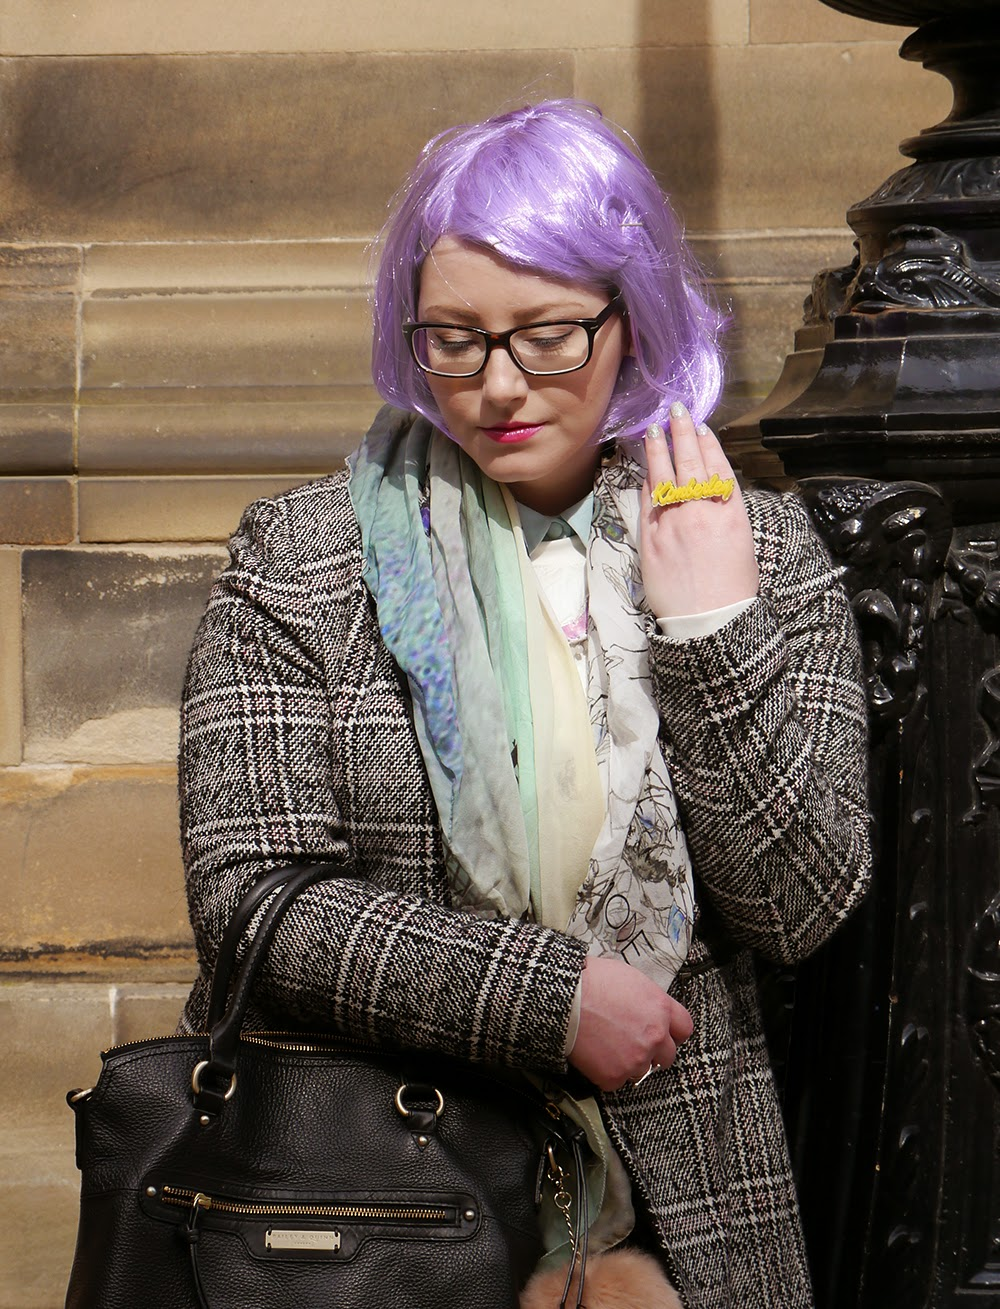 #scotstreetstyle, #EdFashion, Edinburgh, street style, how to, DIY, pastel hair, wig, lilac hair